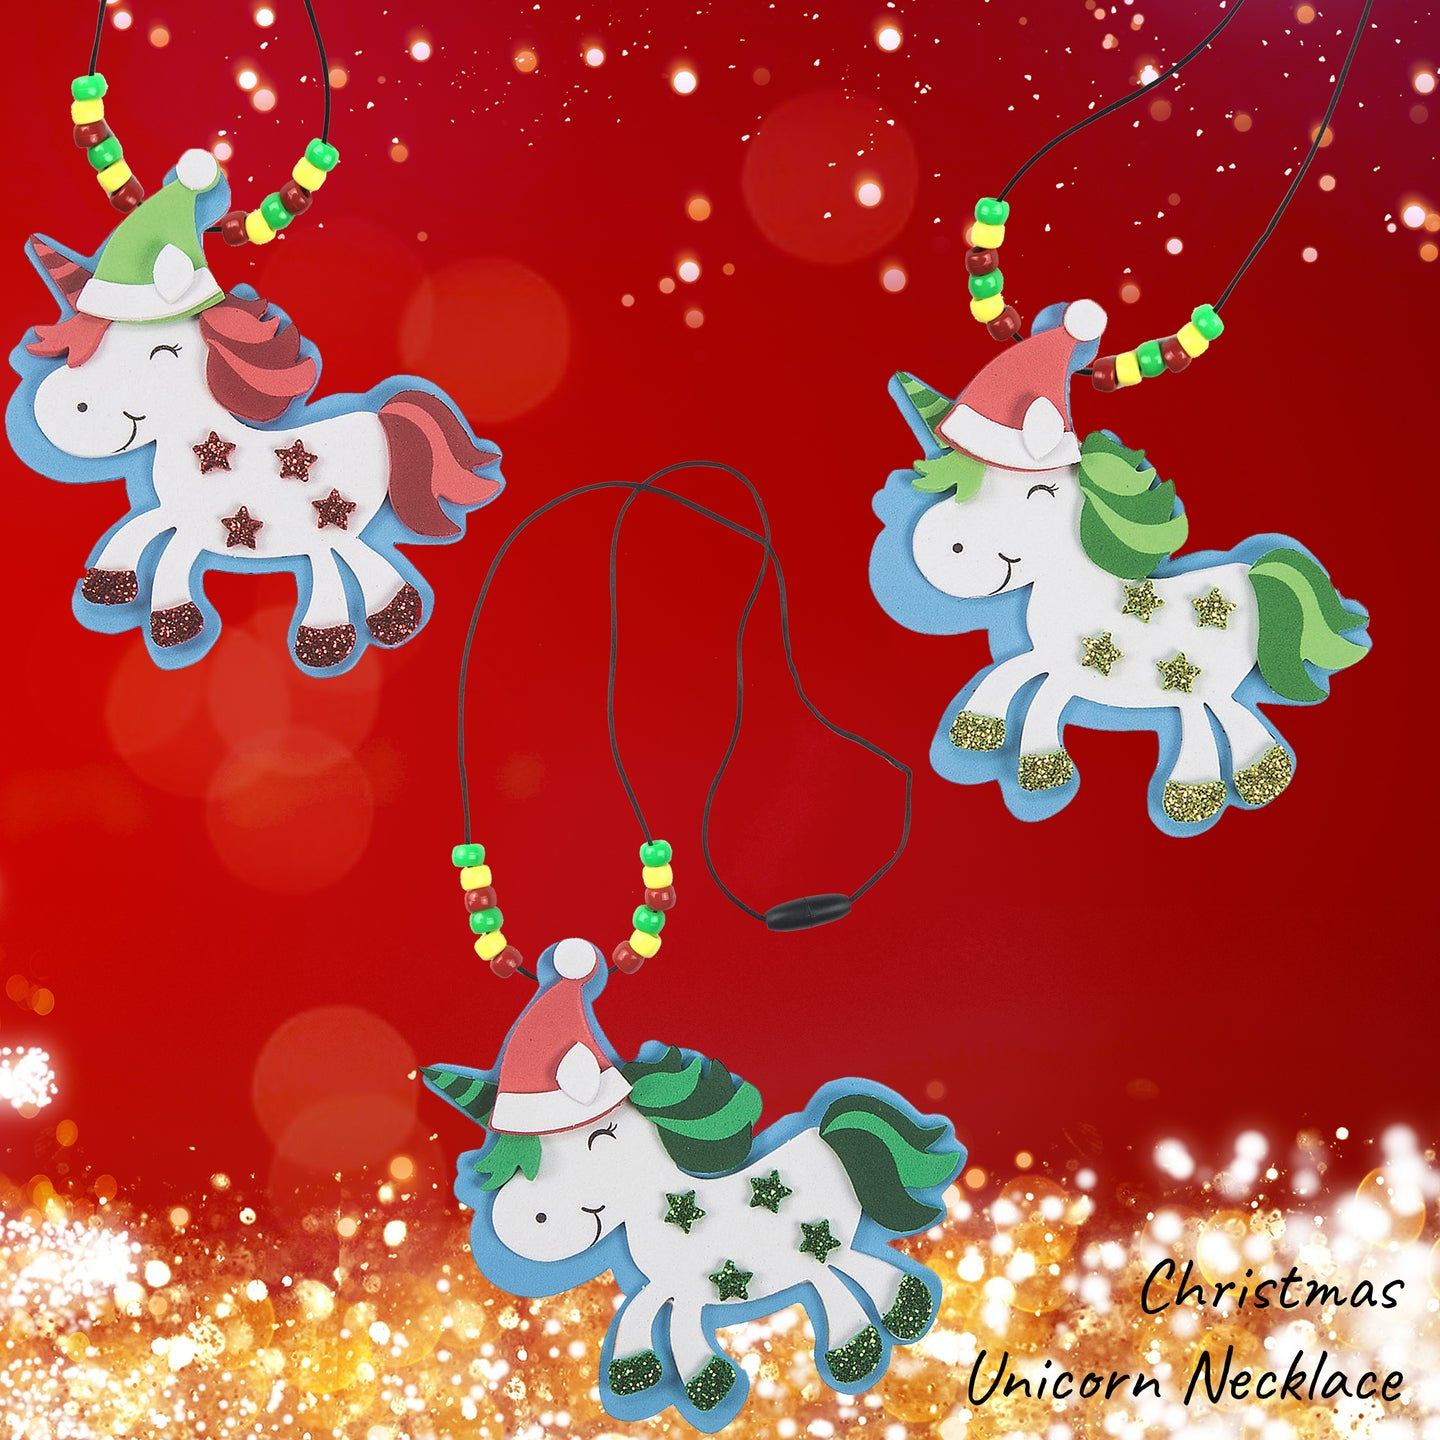 Christmas Unicorn Necklace DIY Craft Kit (Pack of 1, 2 or 12 kits)